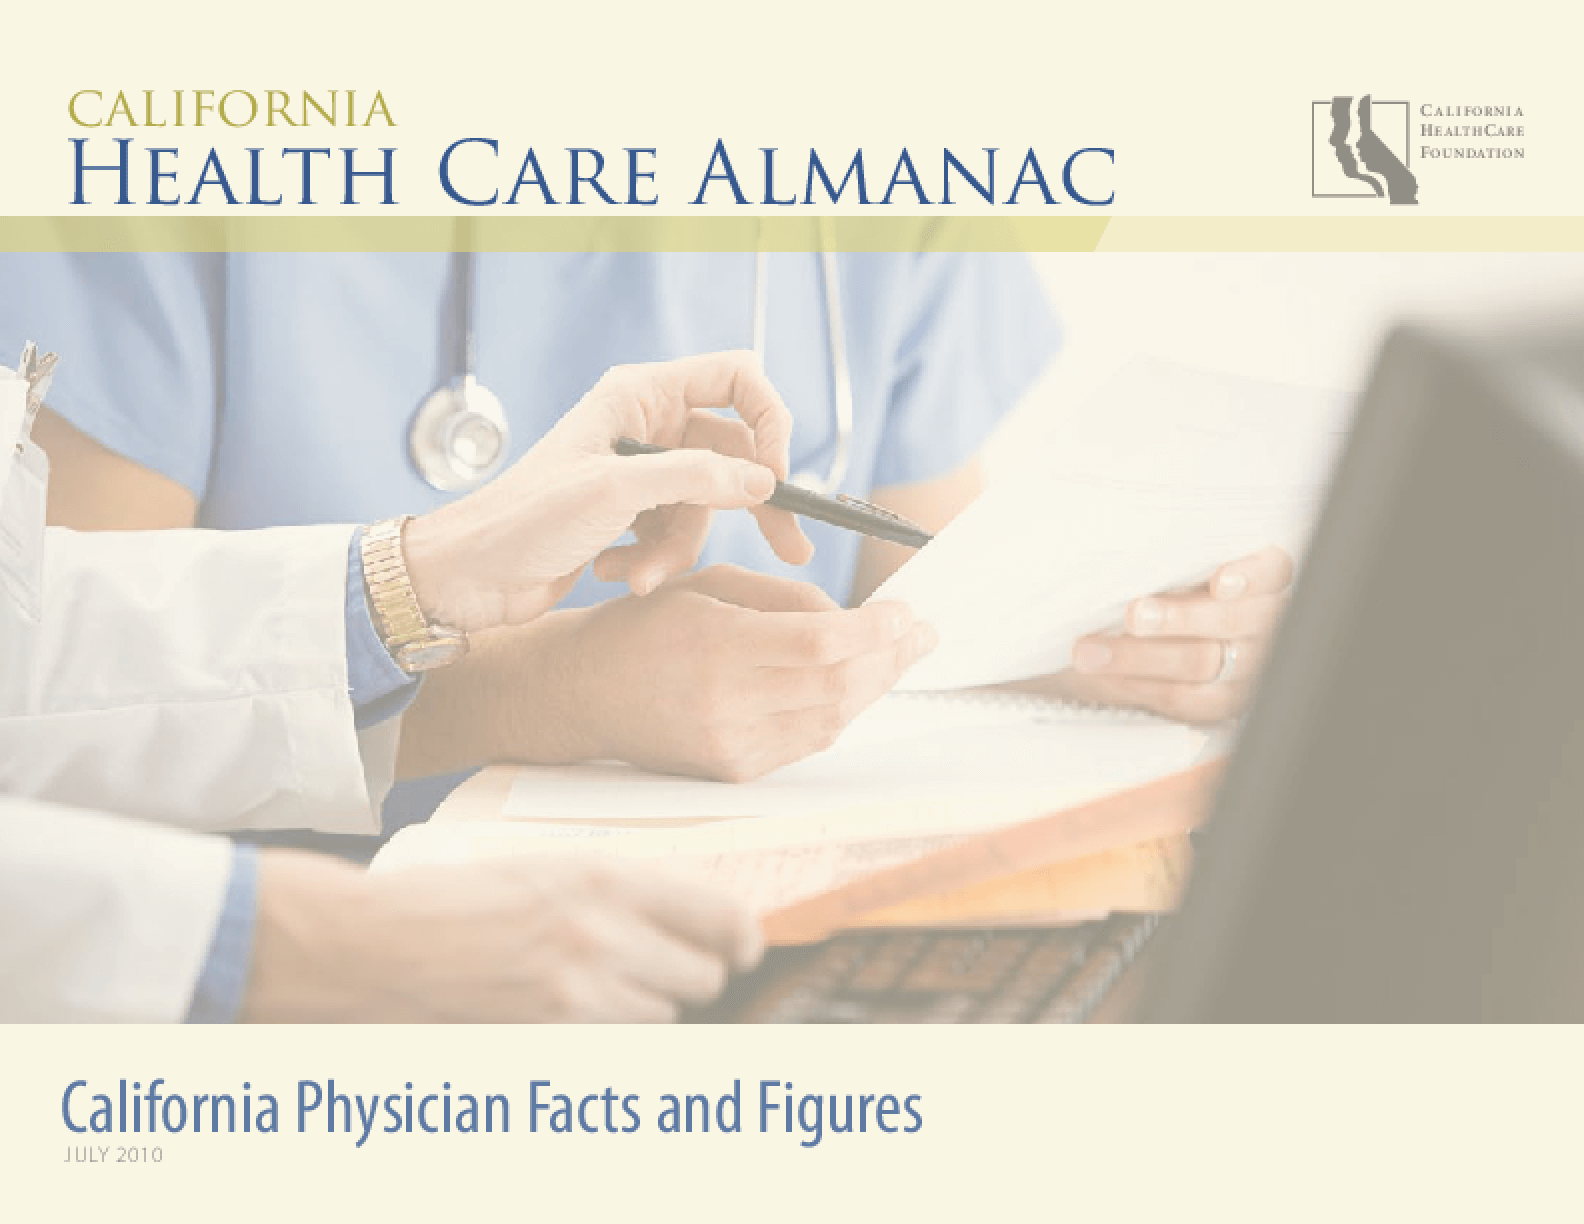 California Physician Facts and Figures